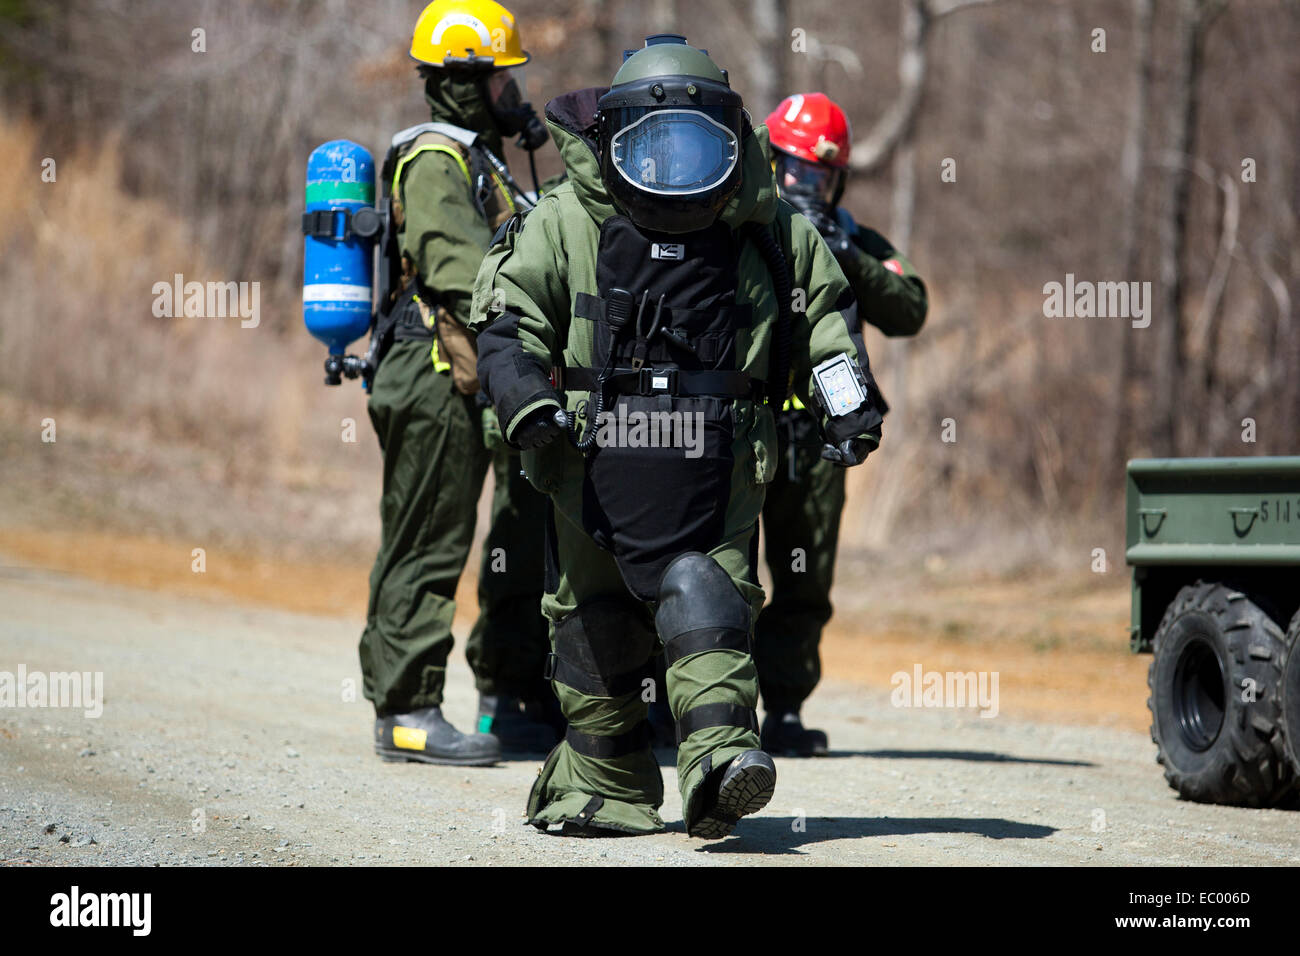 A US Marine Explosive Ordnance Disposal expert with the Chemical Biological Incident Response Force responds to - Stock Image